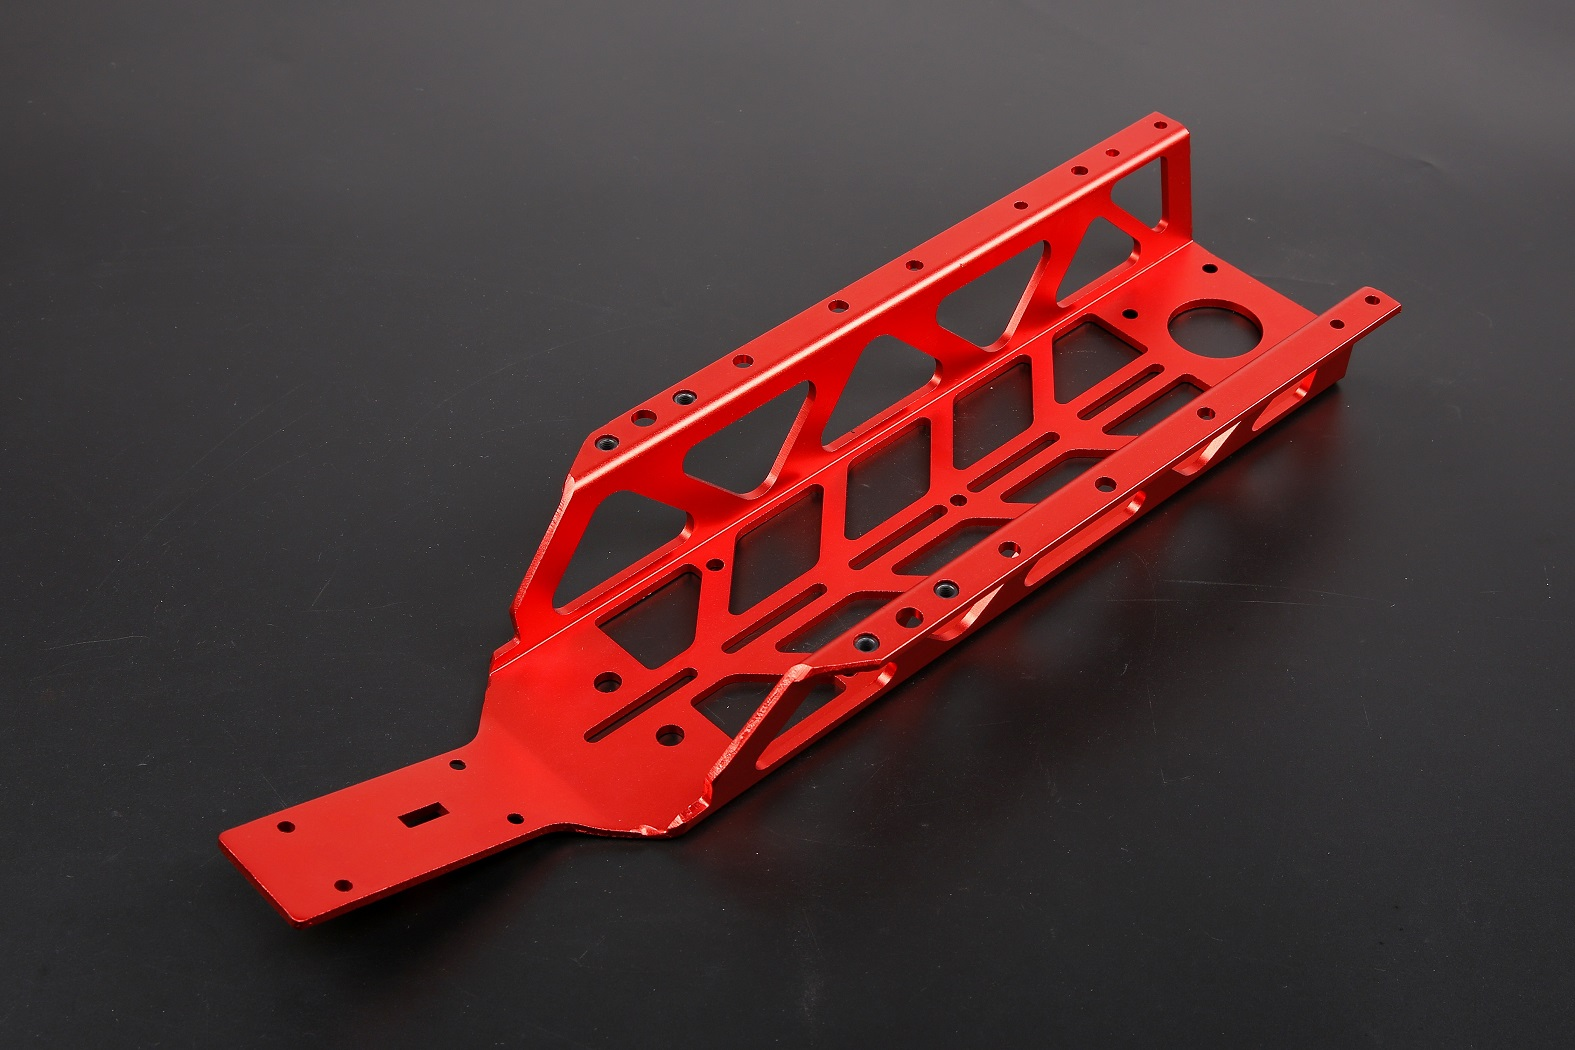 ROVAN 1/5 RC Car Upgrade Parts Baja CNC Steal Light Hollow Chassis Main Frame Chassis For HPI KM Baja 5B SS 5T 5SC baja metal parts new cnc alloy clutch carrier 1 5 rovan hpi km baja 26 29 30 5cc rc car engine parts